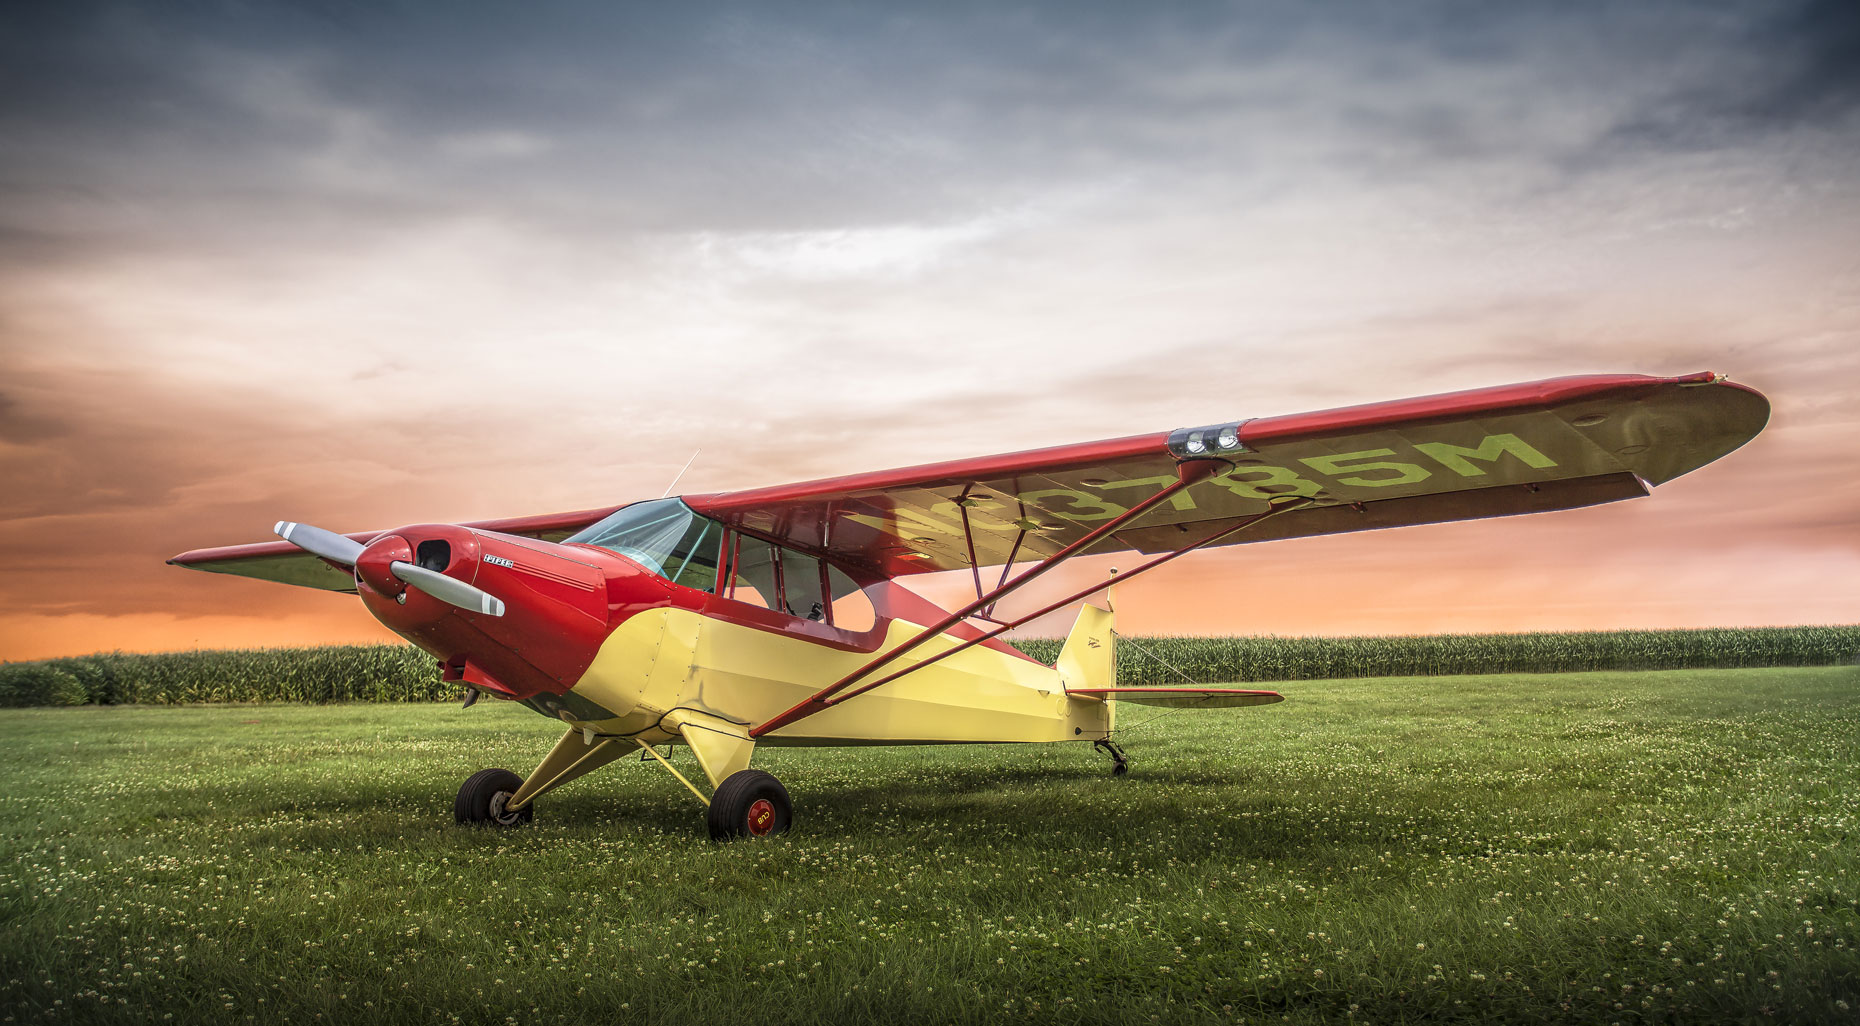 Plane/red yellow/grassy field/red blue sunset/aviation photography